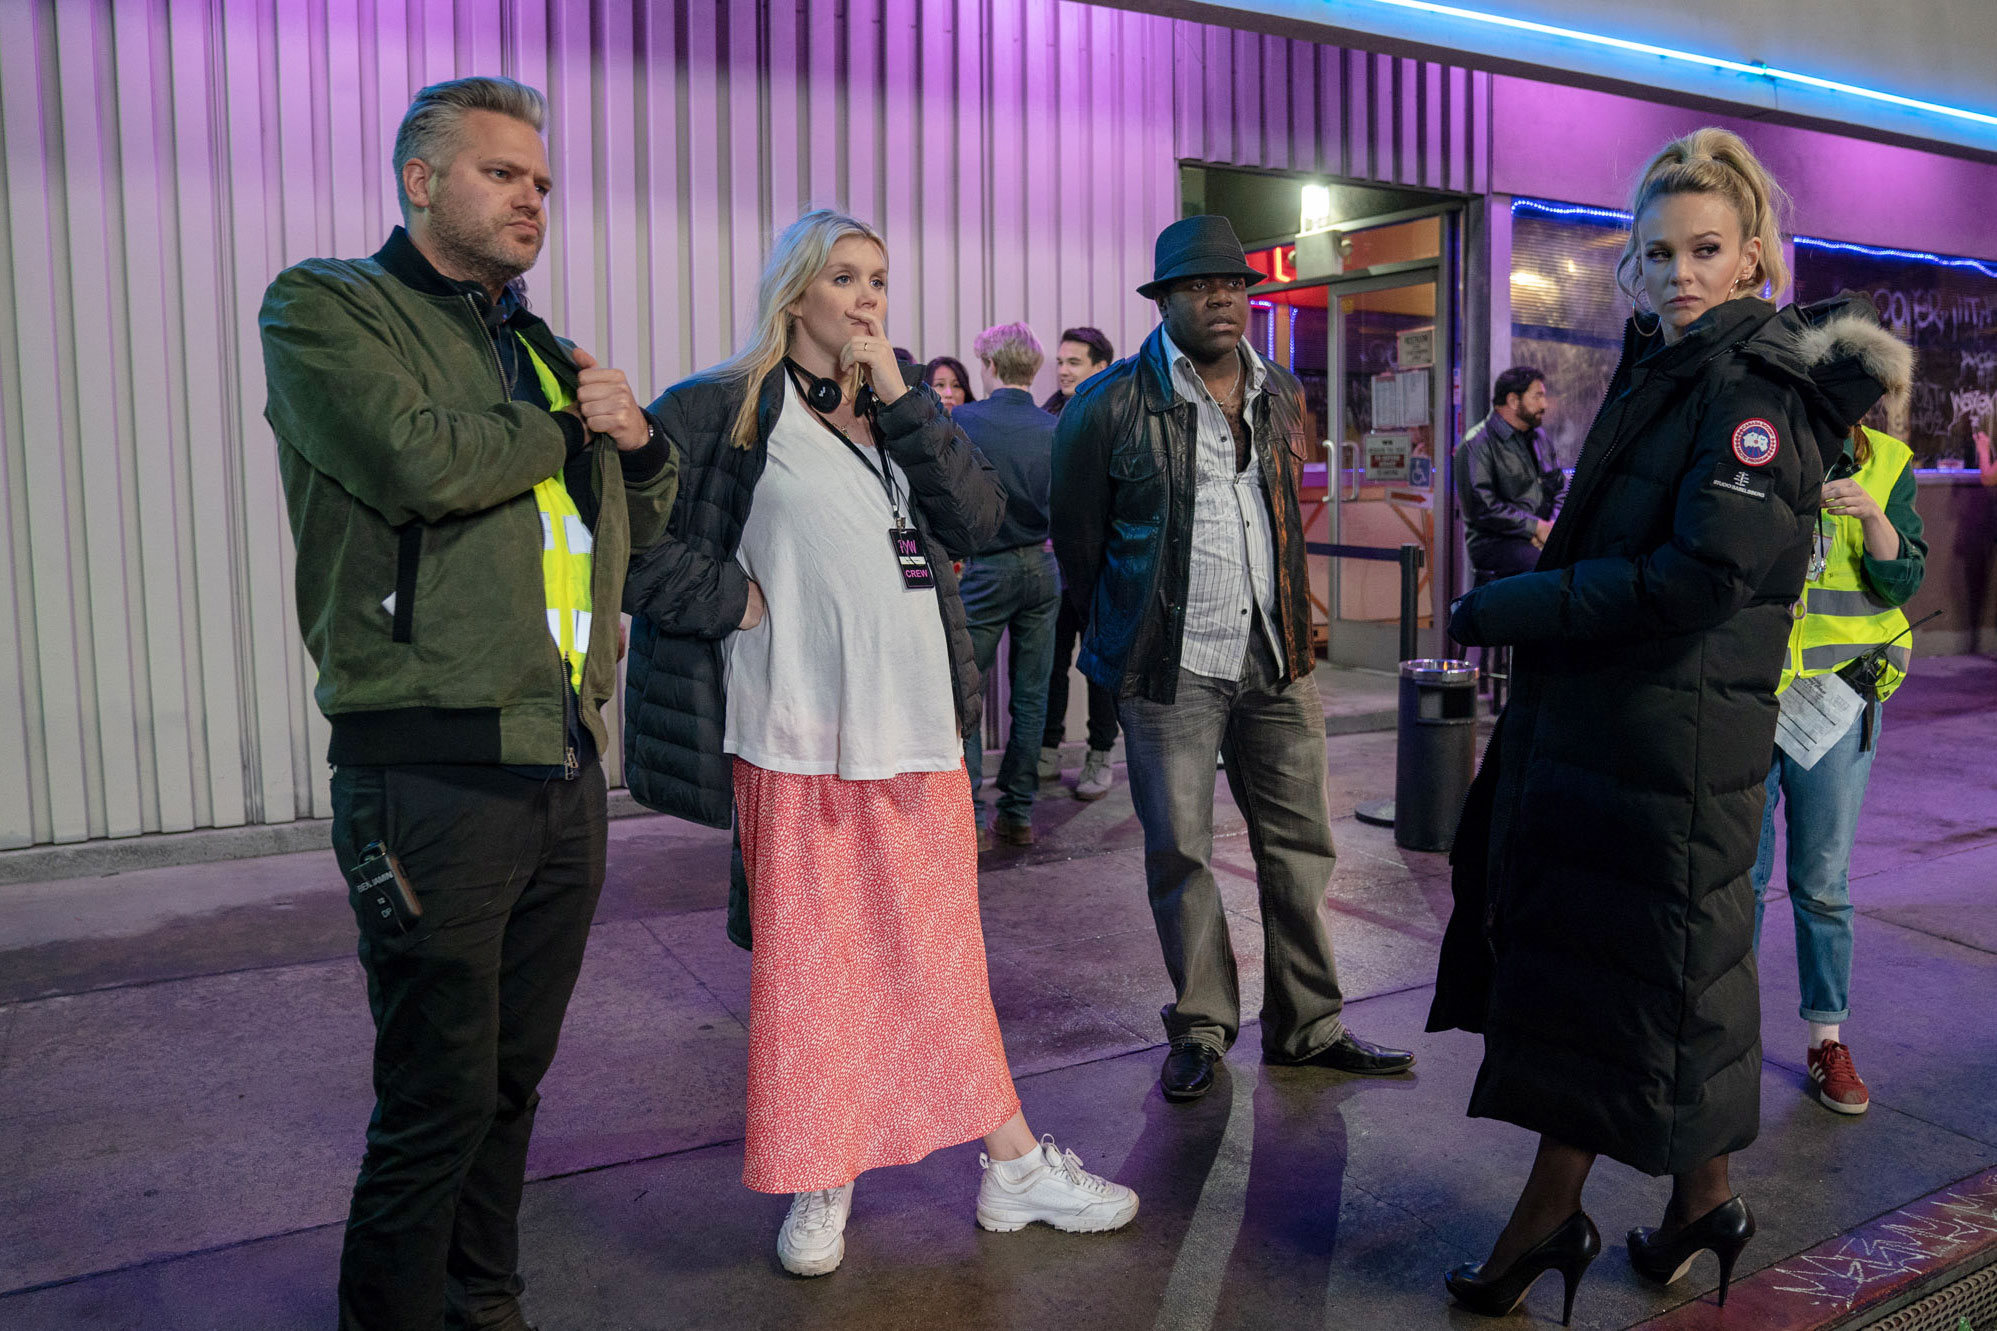 (L to R) Director of photography Benjamin Kracun, writer / director Emerald Fennell, actor Sam Richardson, and actor Carey Mulligan on the set of PROMSING YOUNG WOMAN